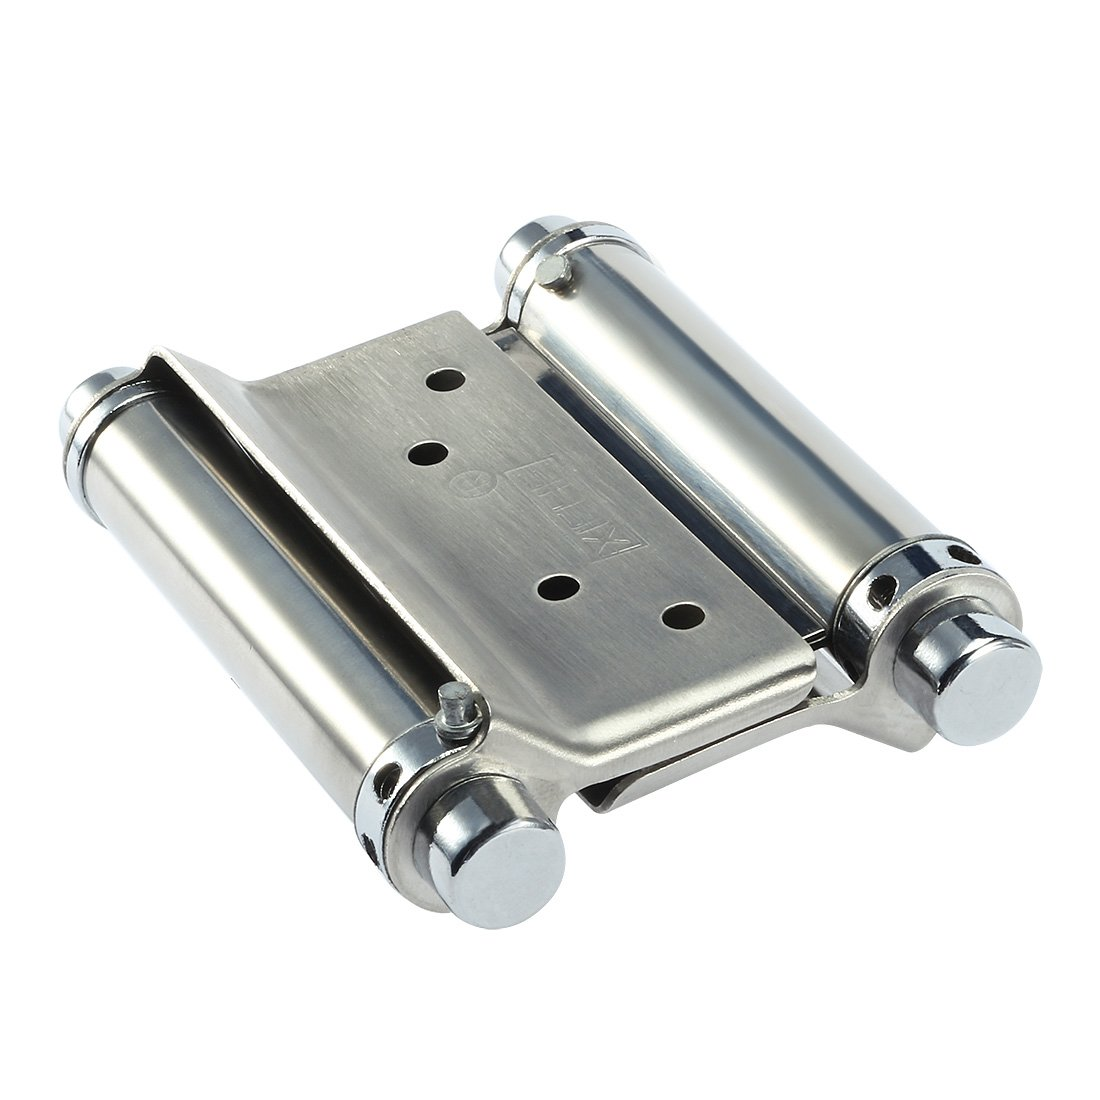 uxcell 2PCS 3 inch Double Action Spring Hinges for Saloon Cafe Swing Doors